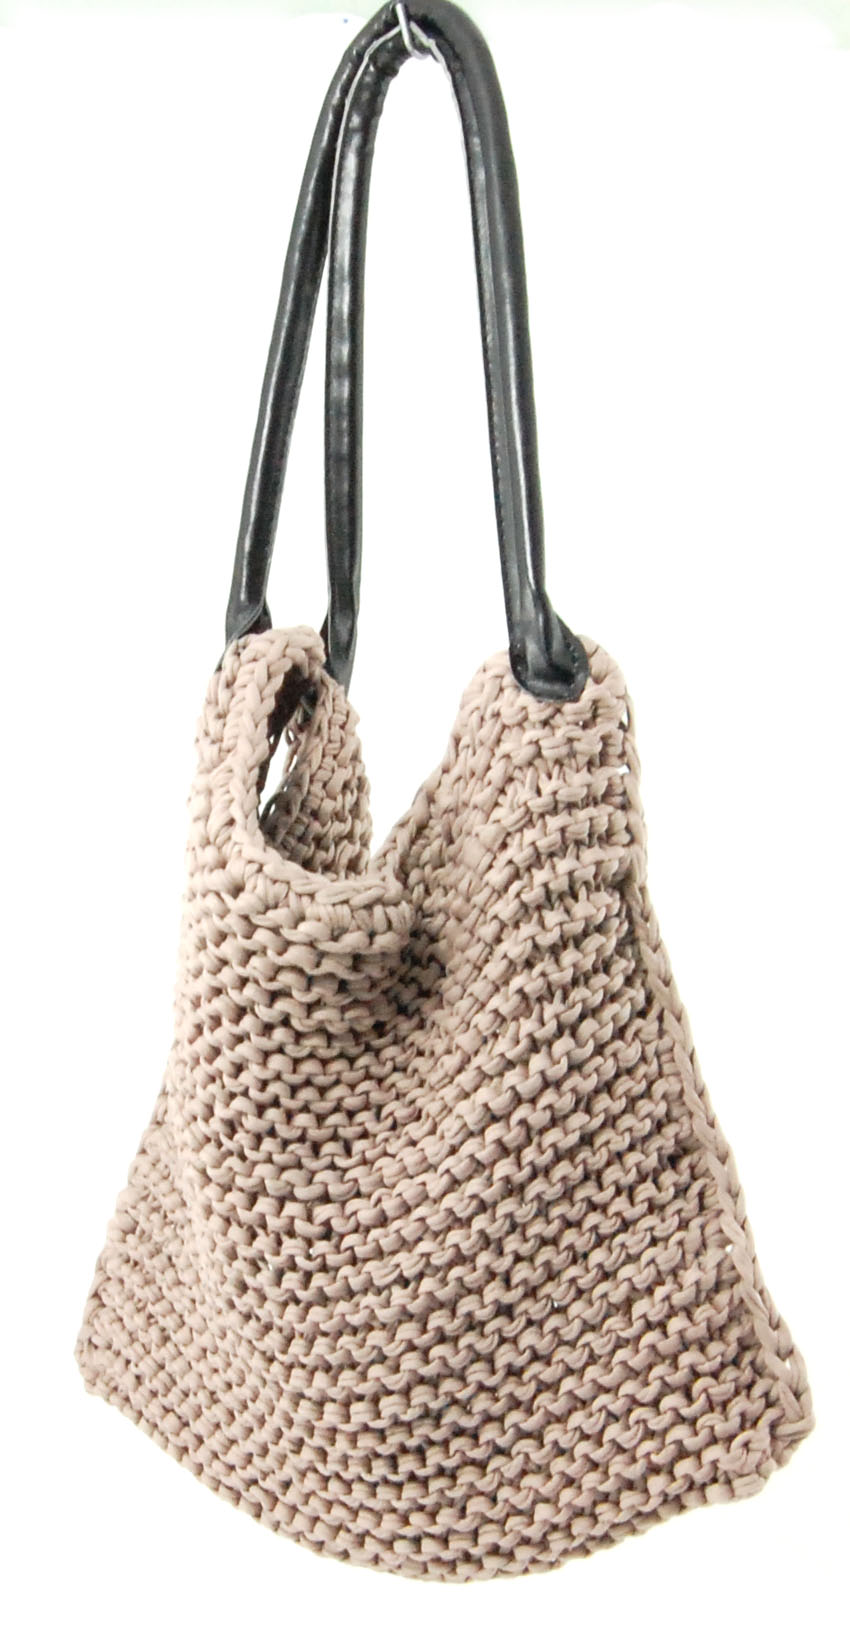 Knitted Handbags Patterns : Knitted bag tutorial LVLY